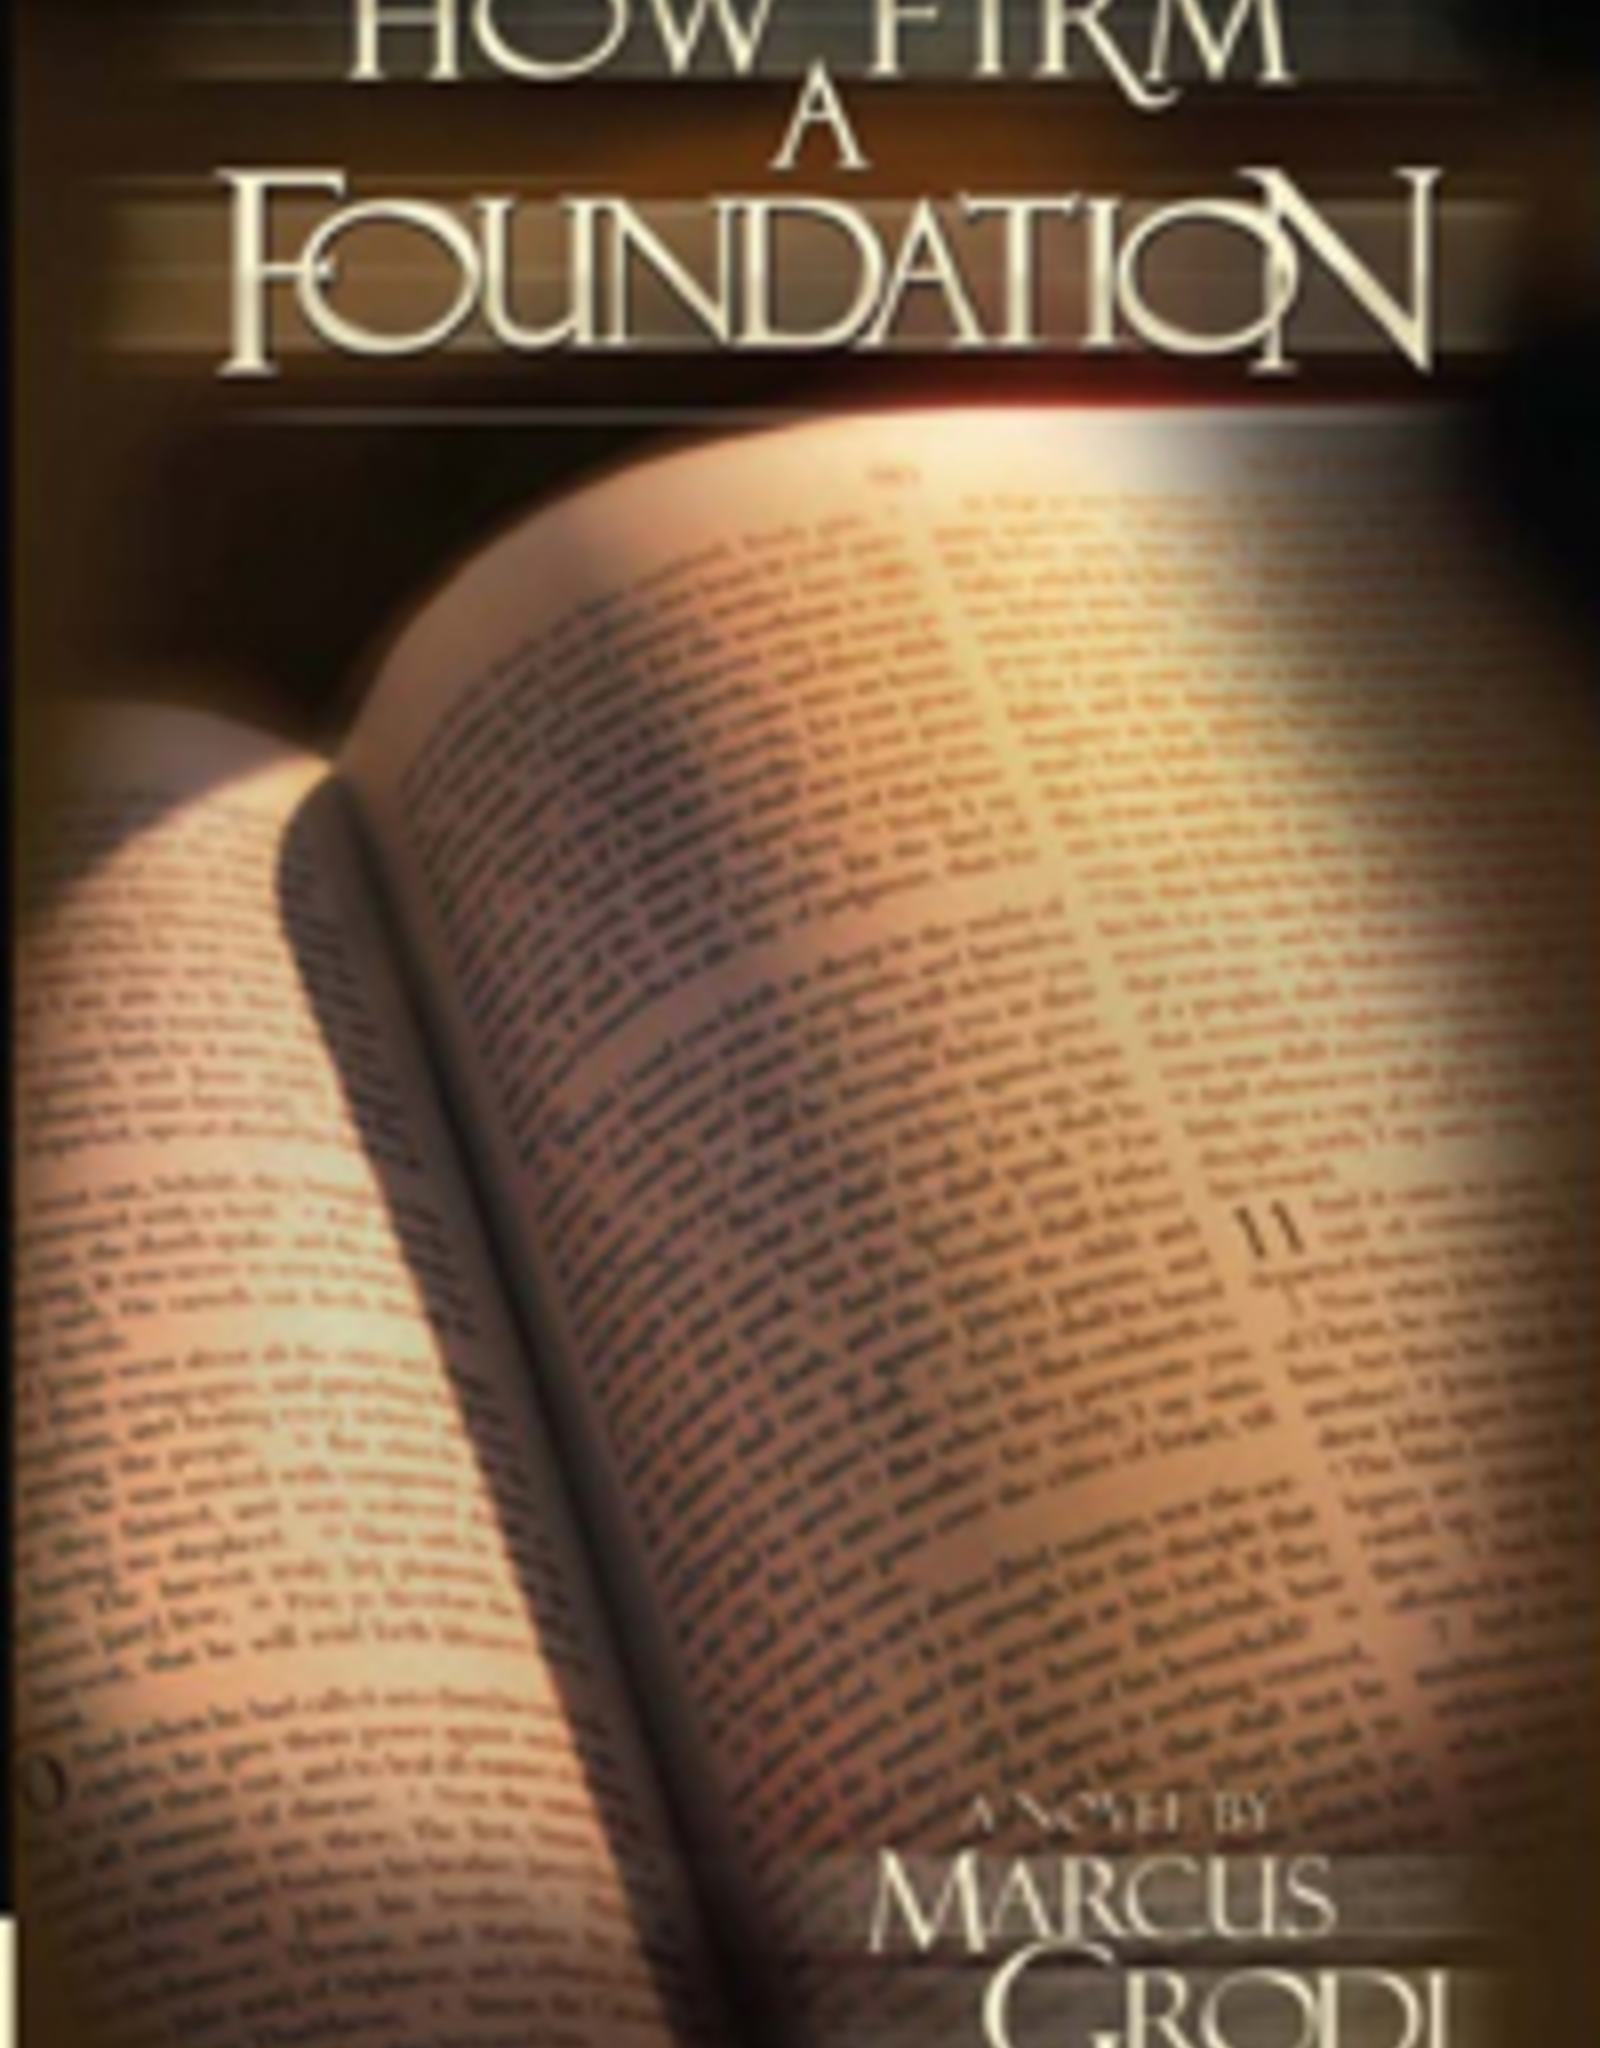 Catholic Word Publisher Group How Firm a Foundation, by Marcus Grodi (paperback)